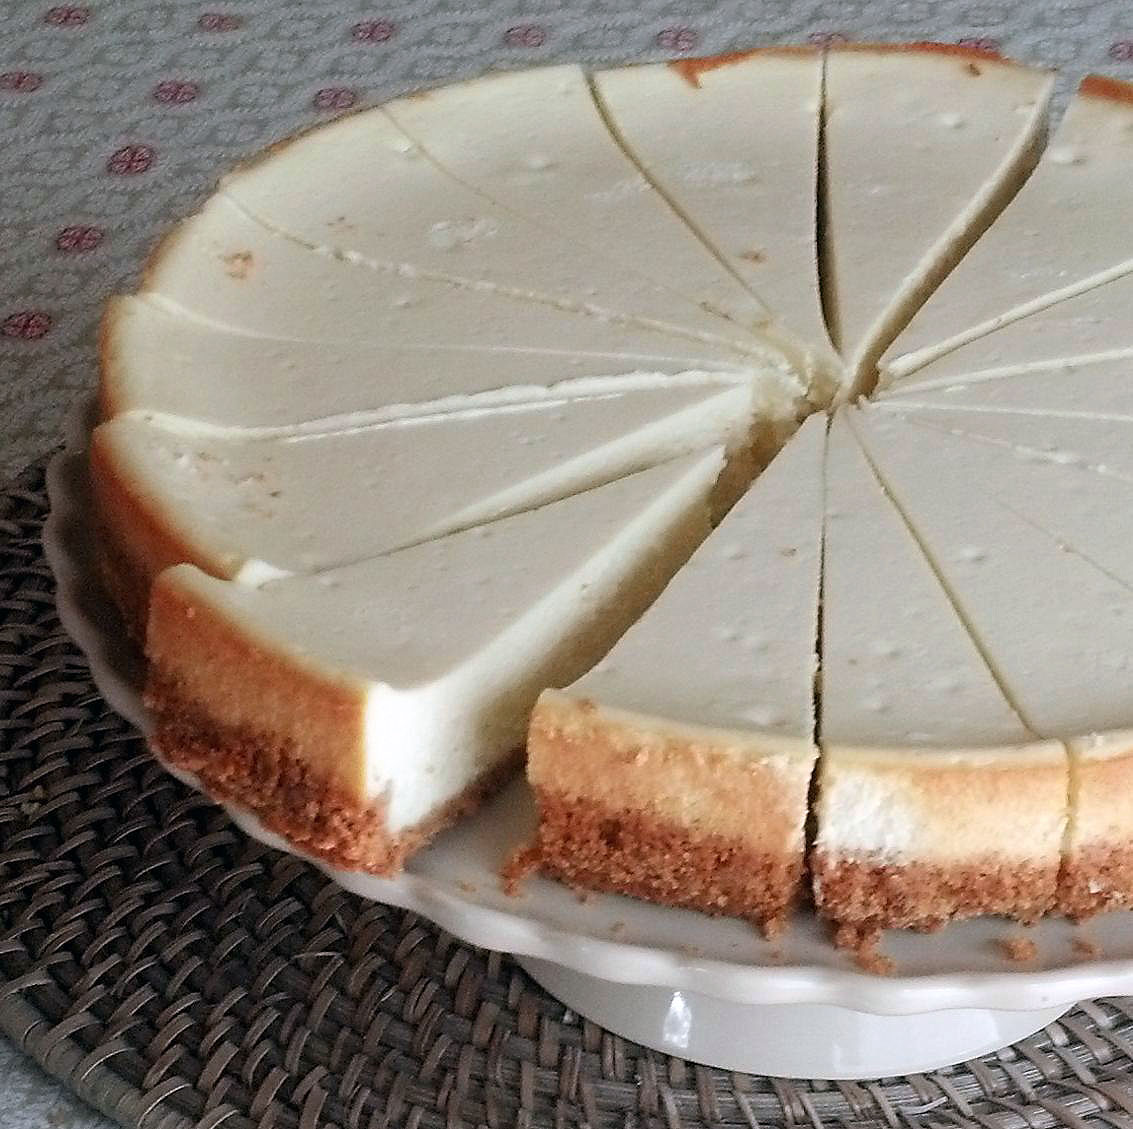 a plain cheesecake on a cake stand, cut into slices with one slice set apart ready to serve